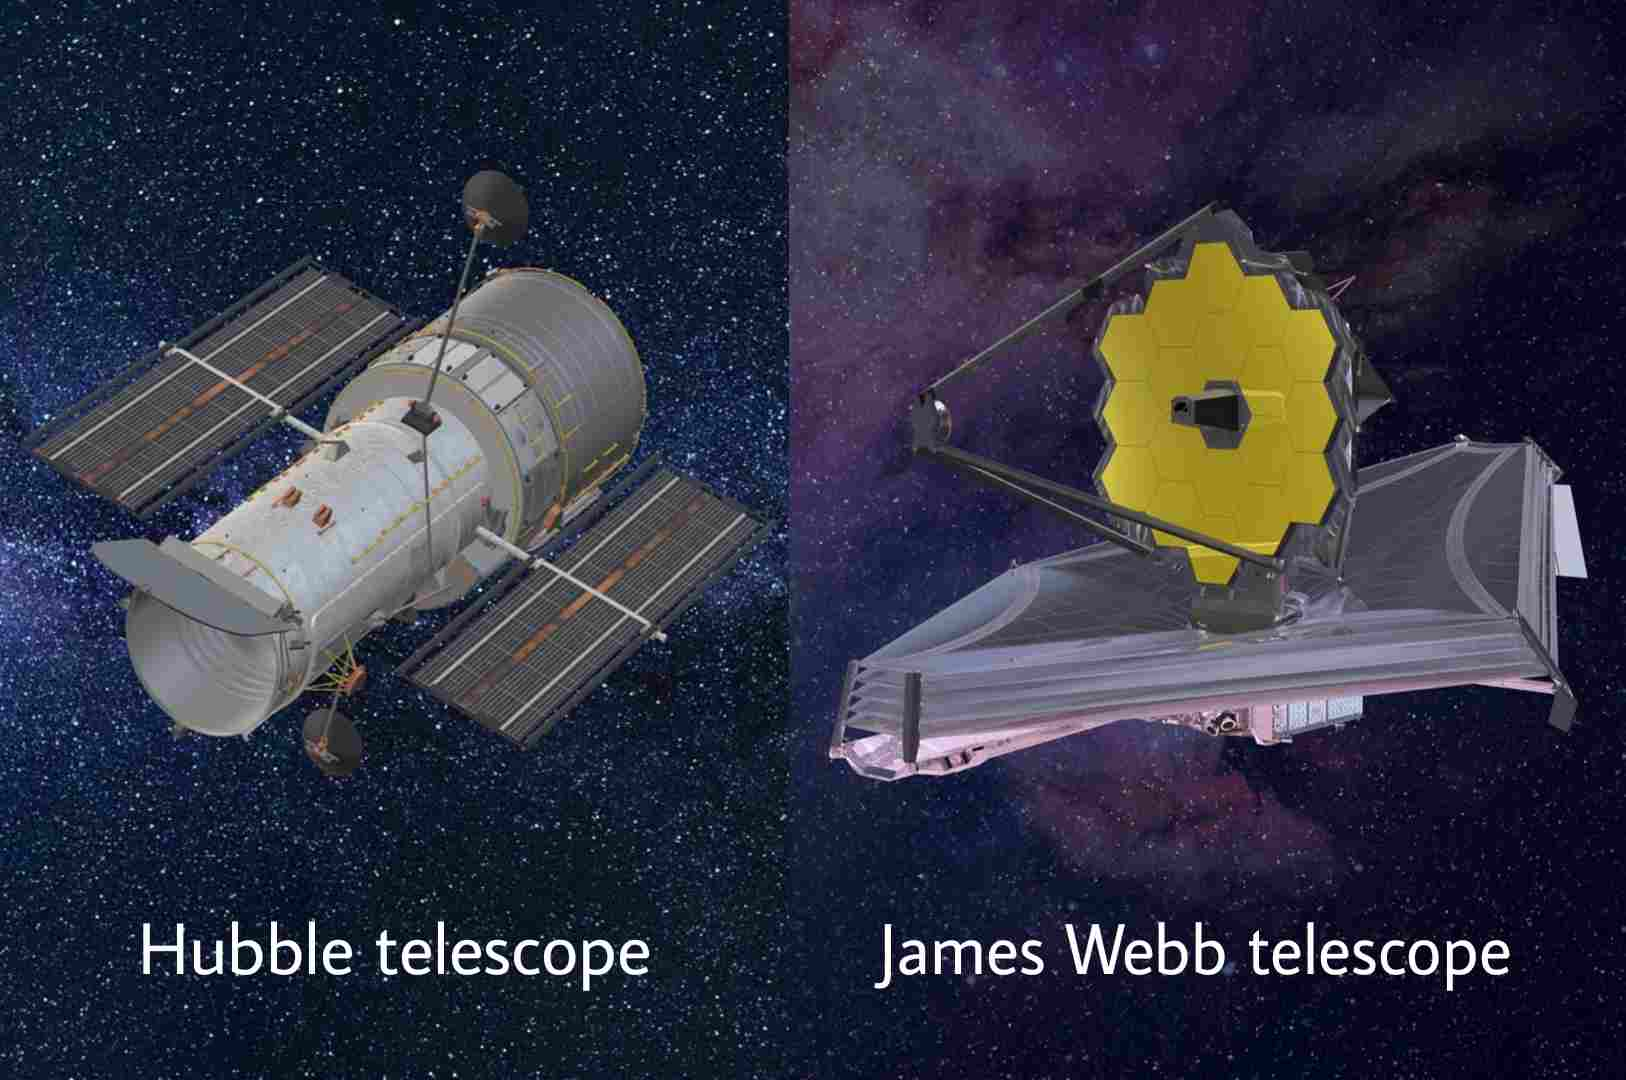 Why is the James Webb telescope better than Hubble telescope?